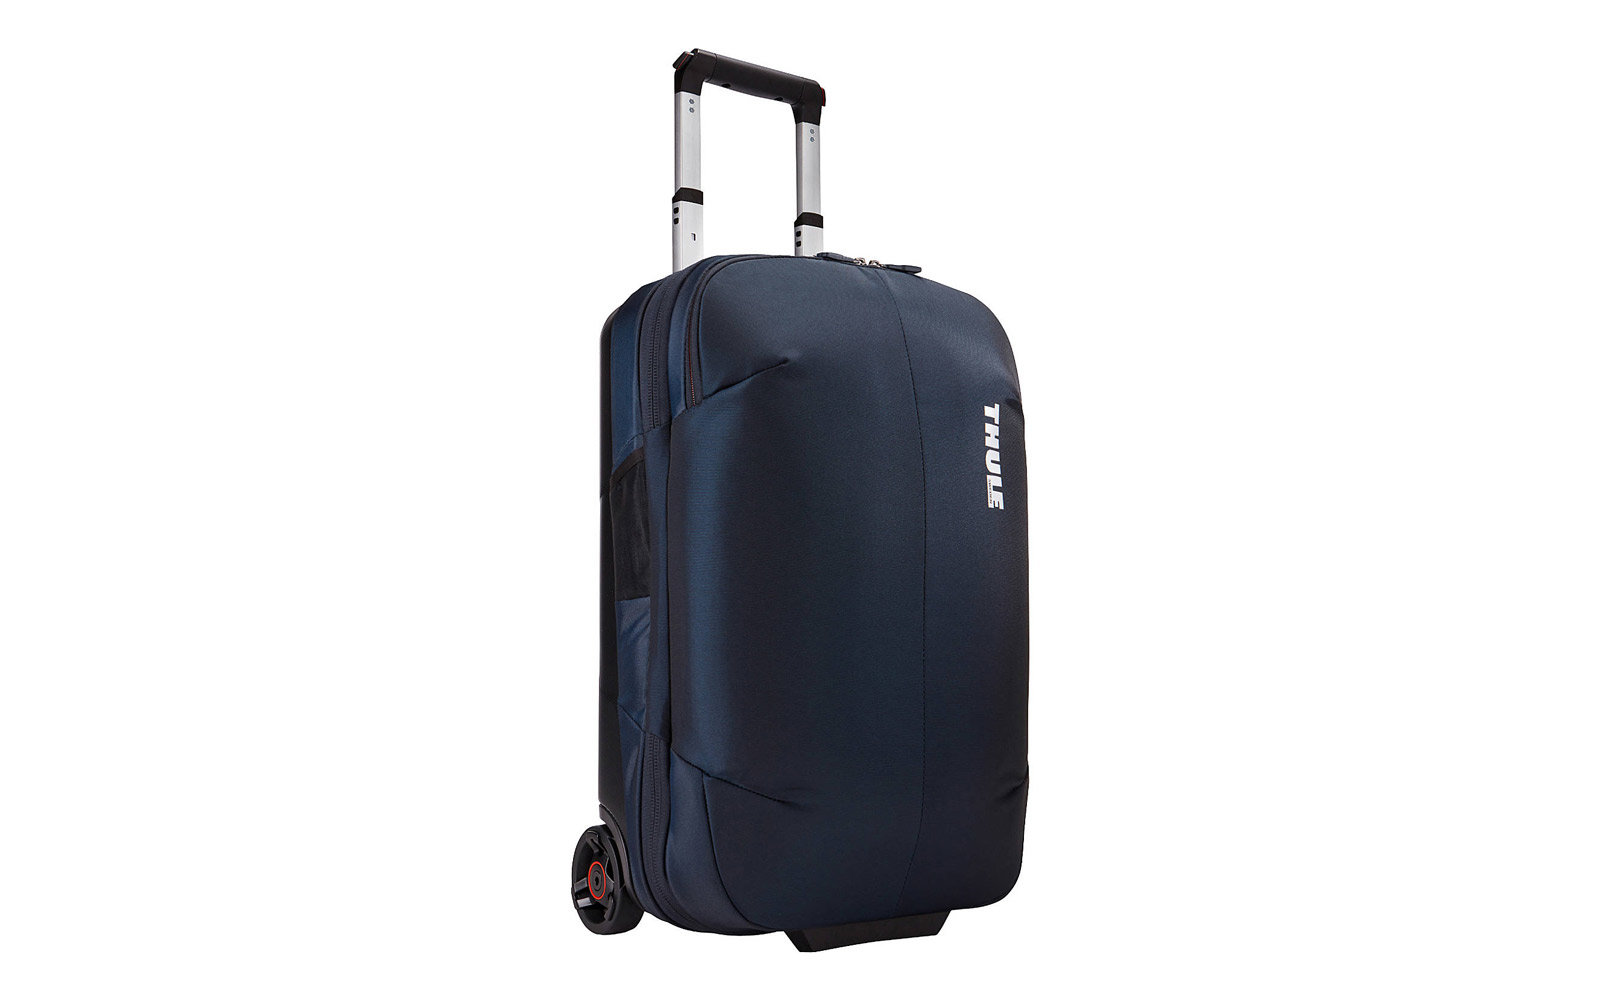 Thule Subterra Carry-on Rolling Duffel